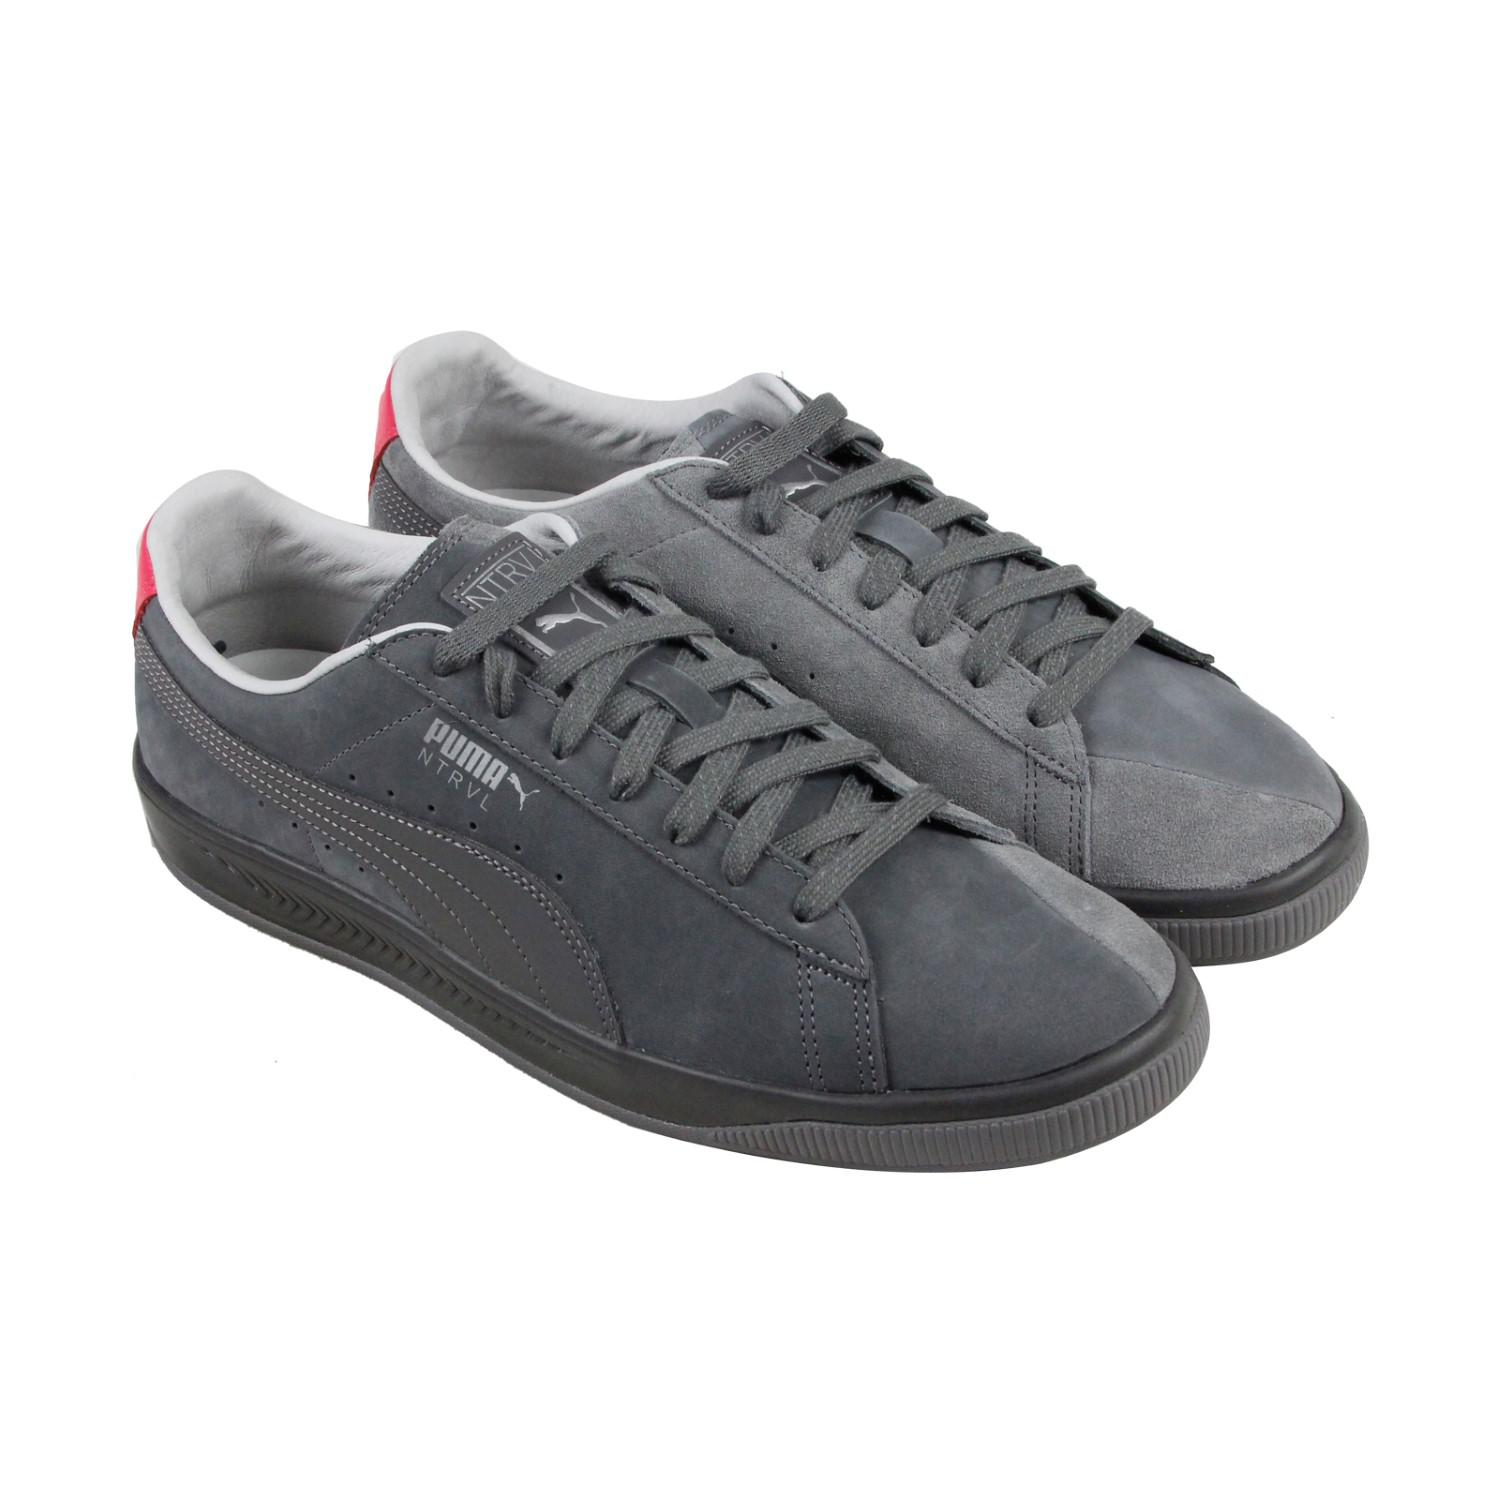 8db7c07d216 Lyst - PUMA Suede Ignite Staple Gray Silver Smoke Pearl Mens Lace Up ...